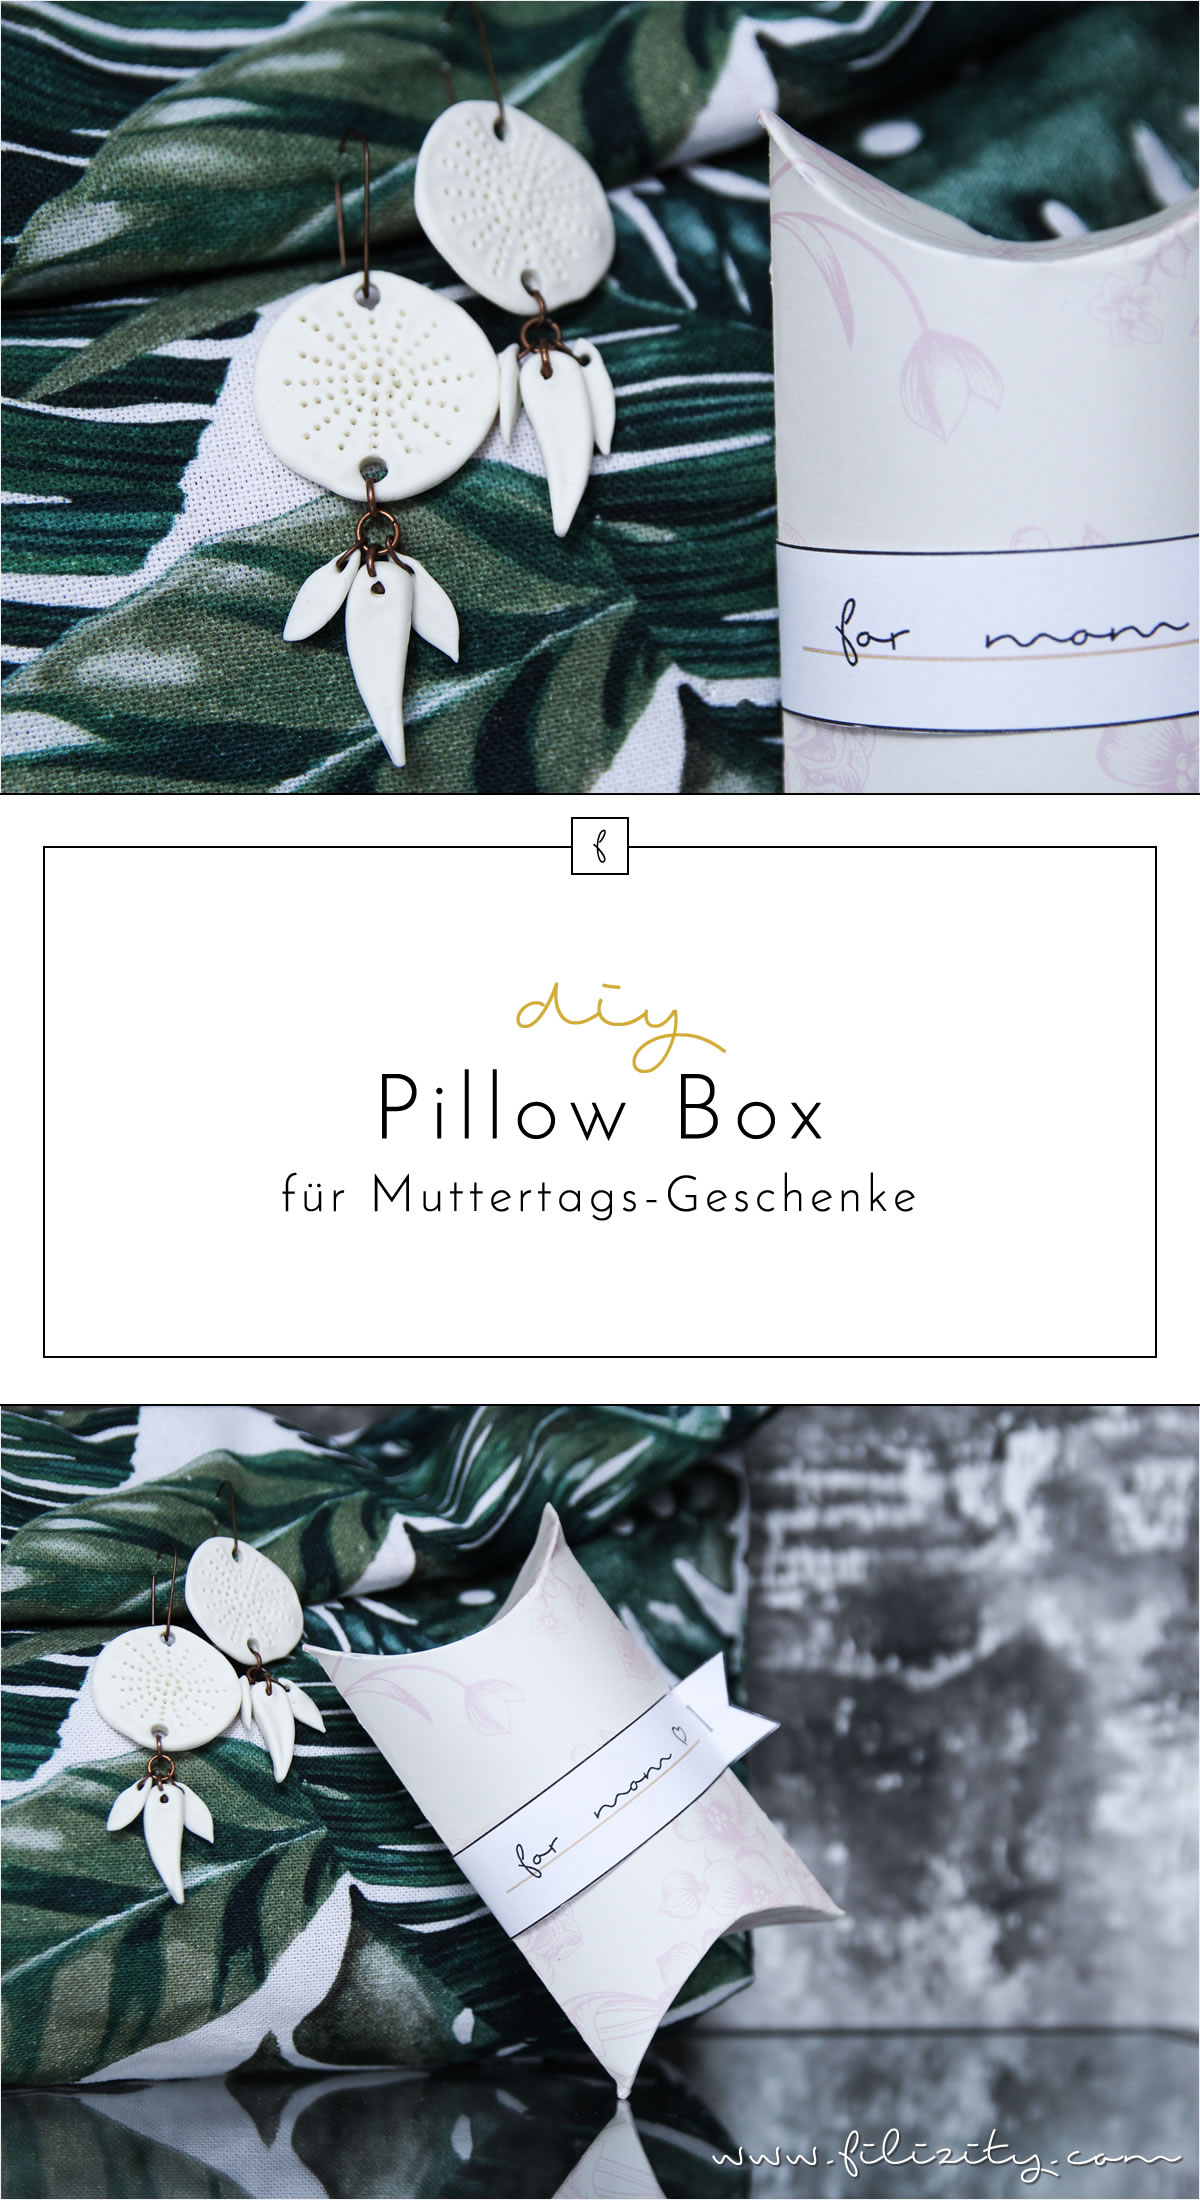 DIY Pillow Box für Muttertags-Geschenke [Free Printable]